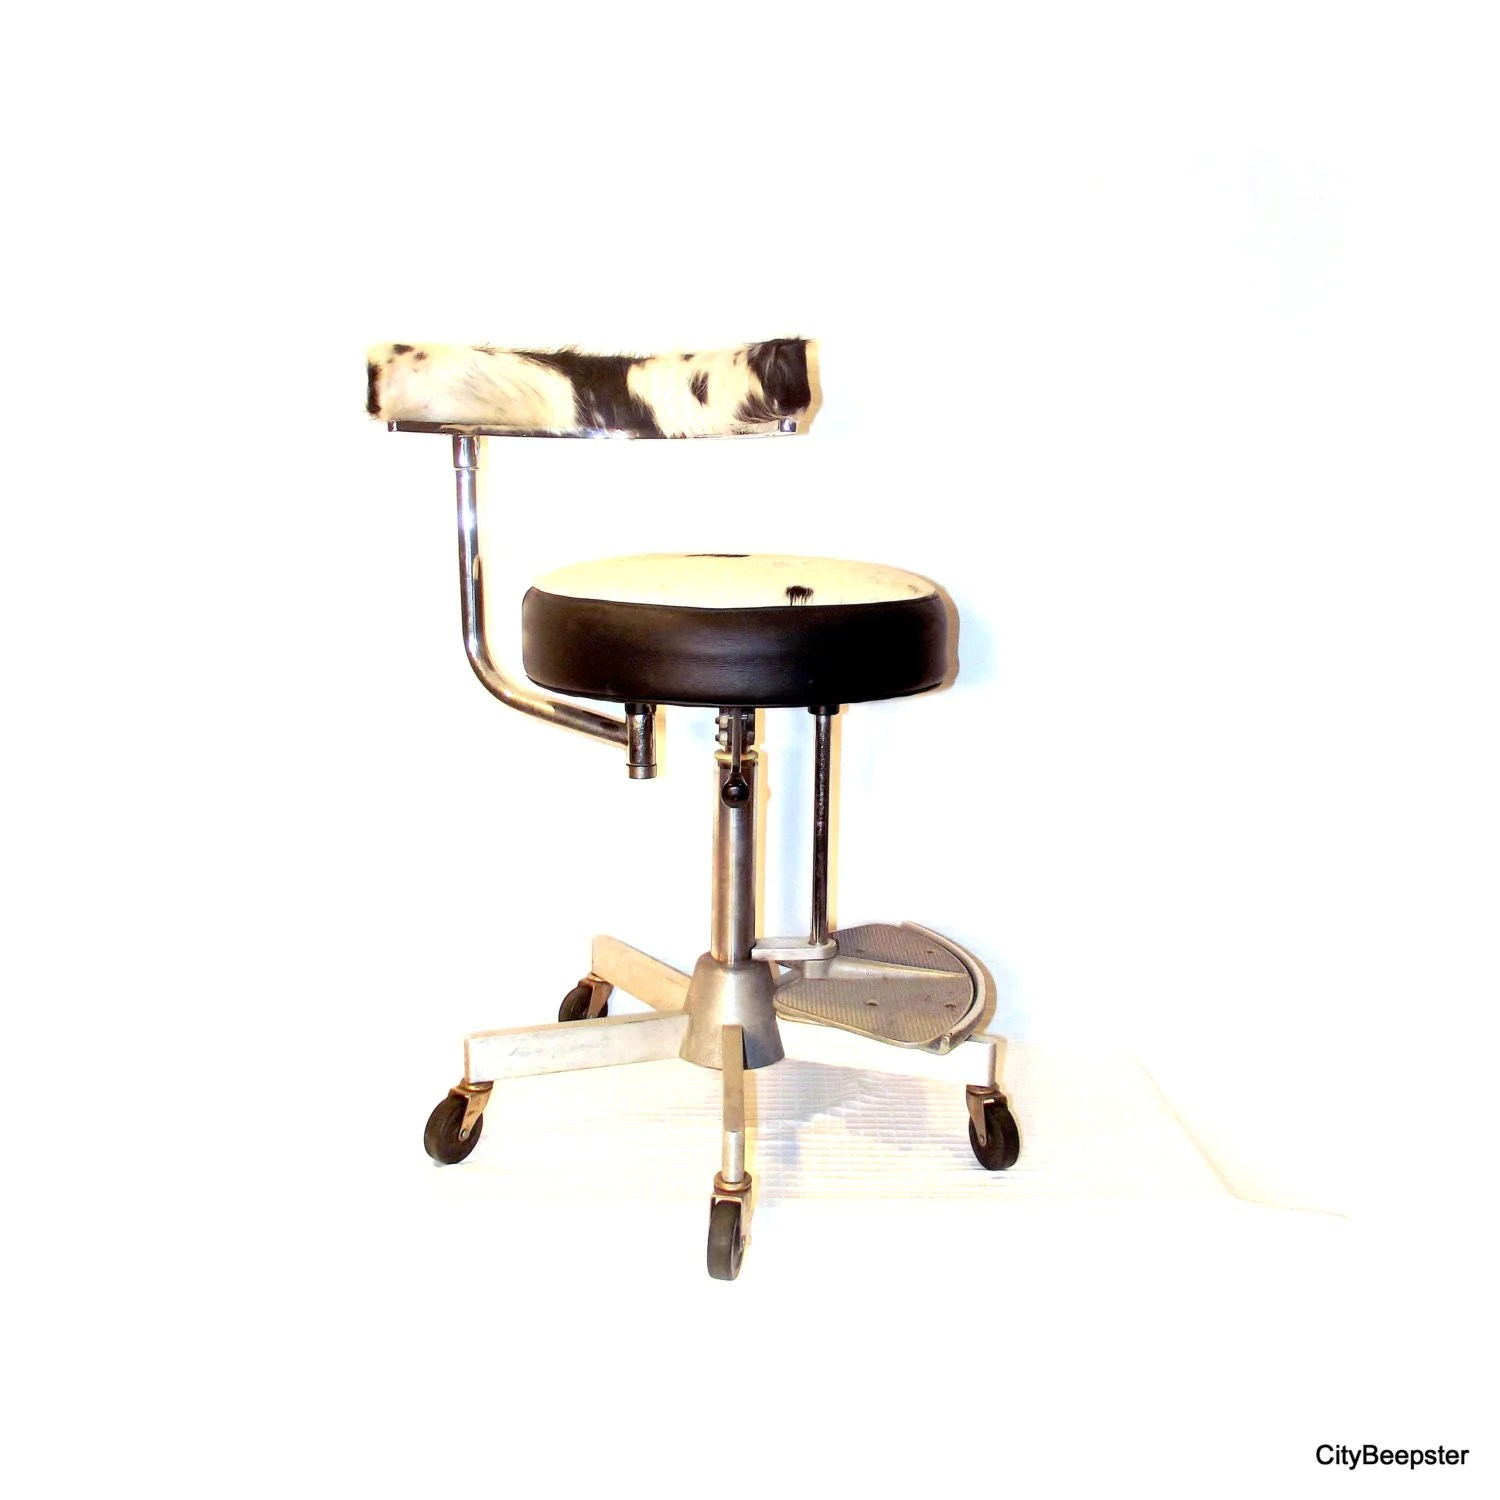 folding chair upcycle small beach chairs uk vintage industrial upcycled adjustable metal stool